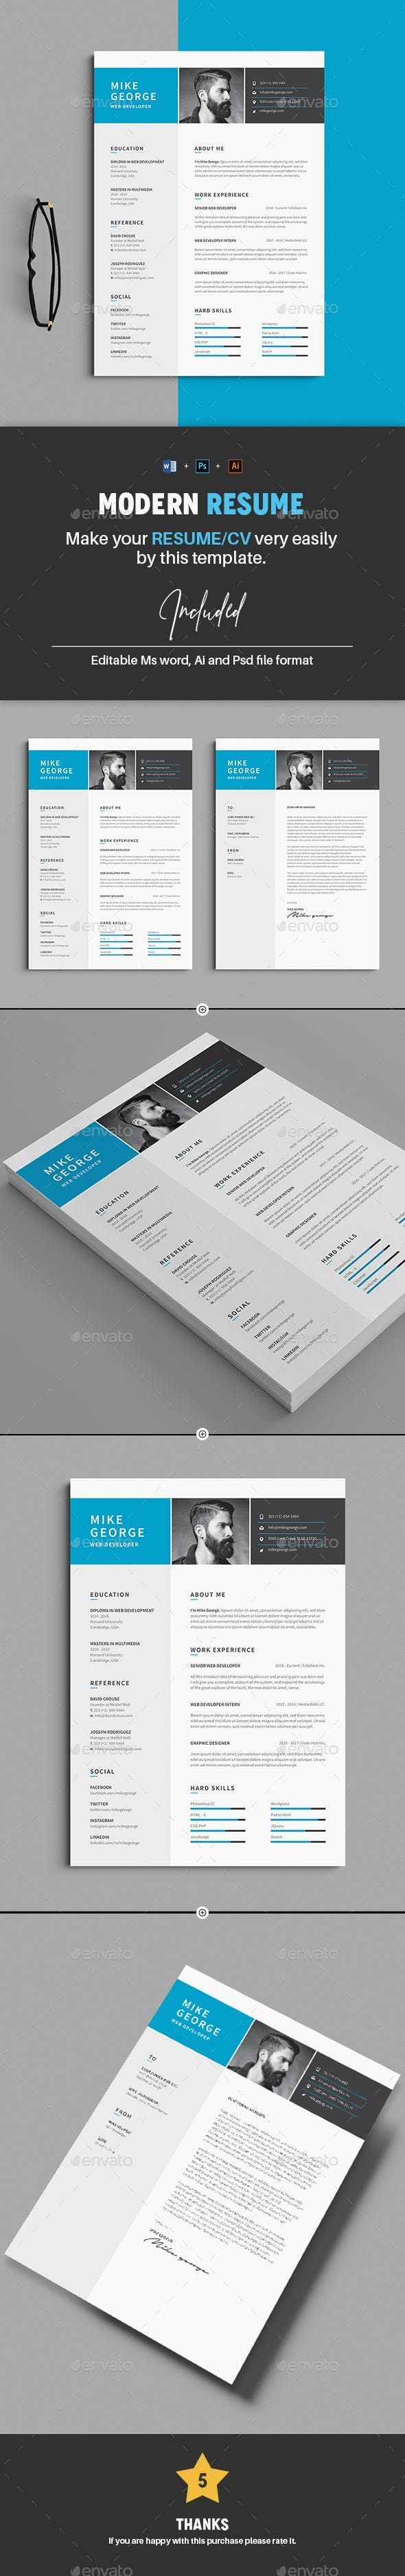 Resume Template PSD, Vector EPS, AI, MS Word AI EPS MS